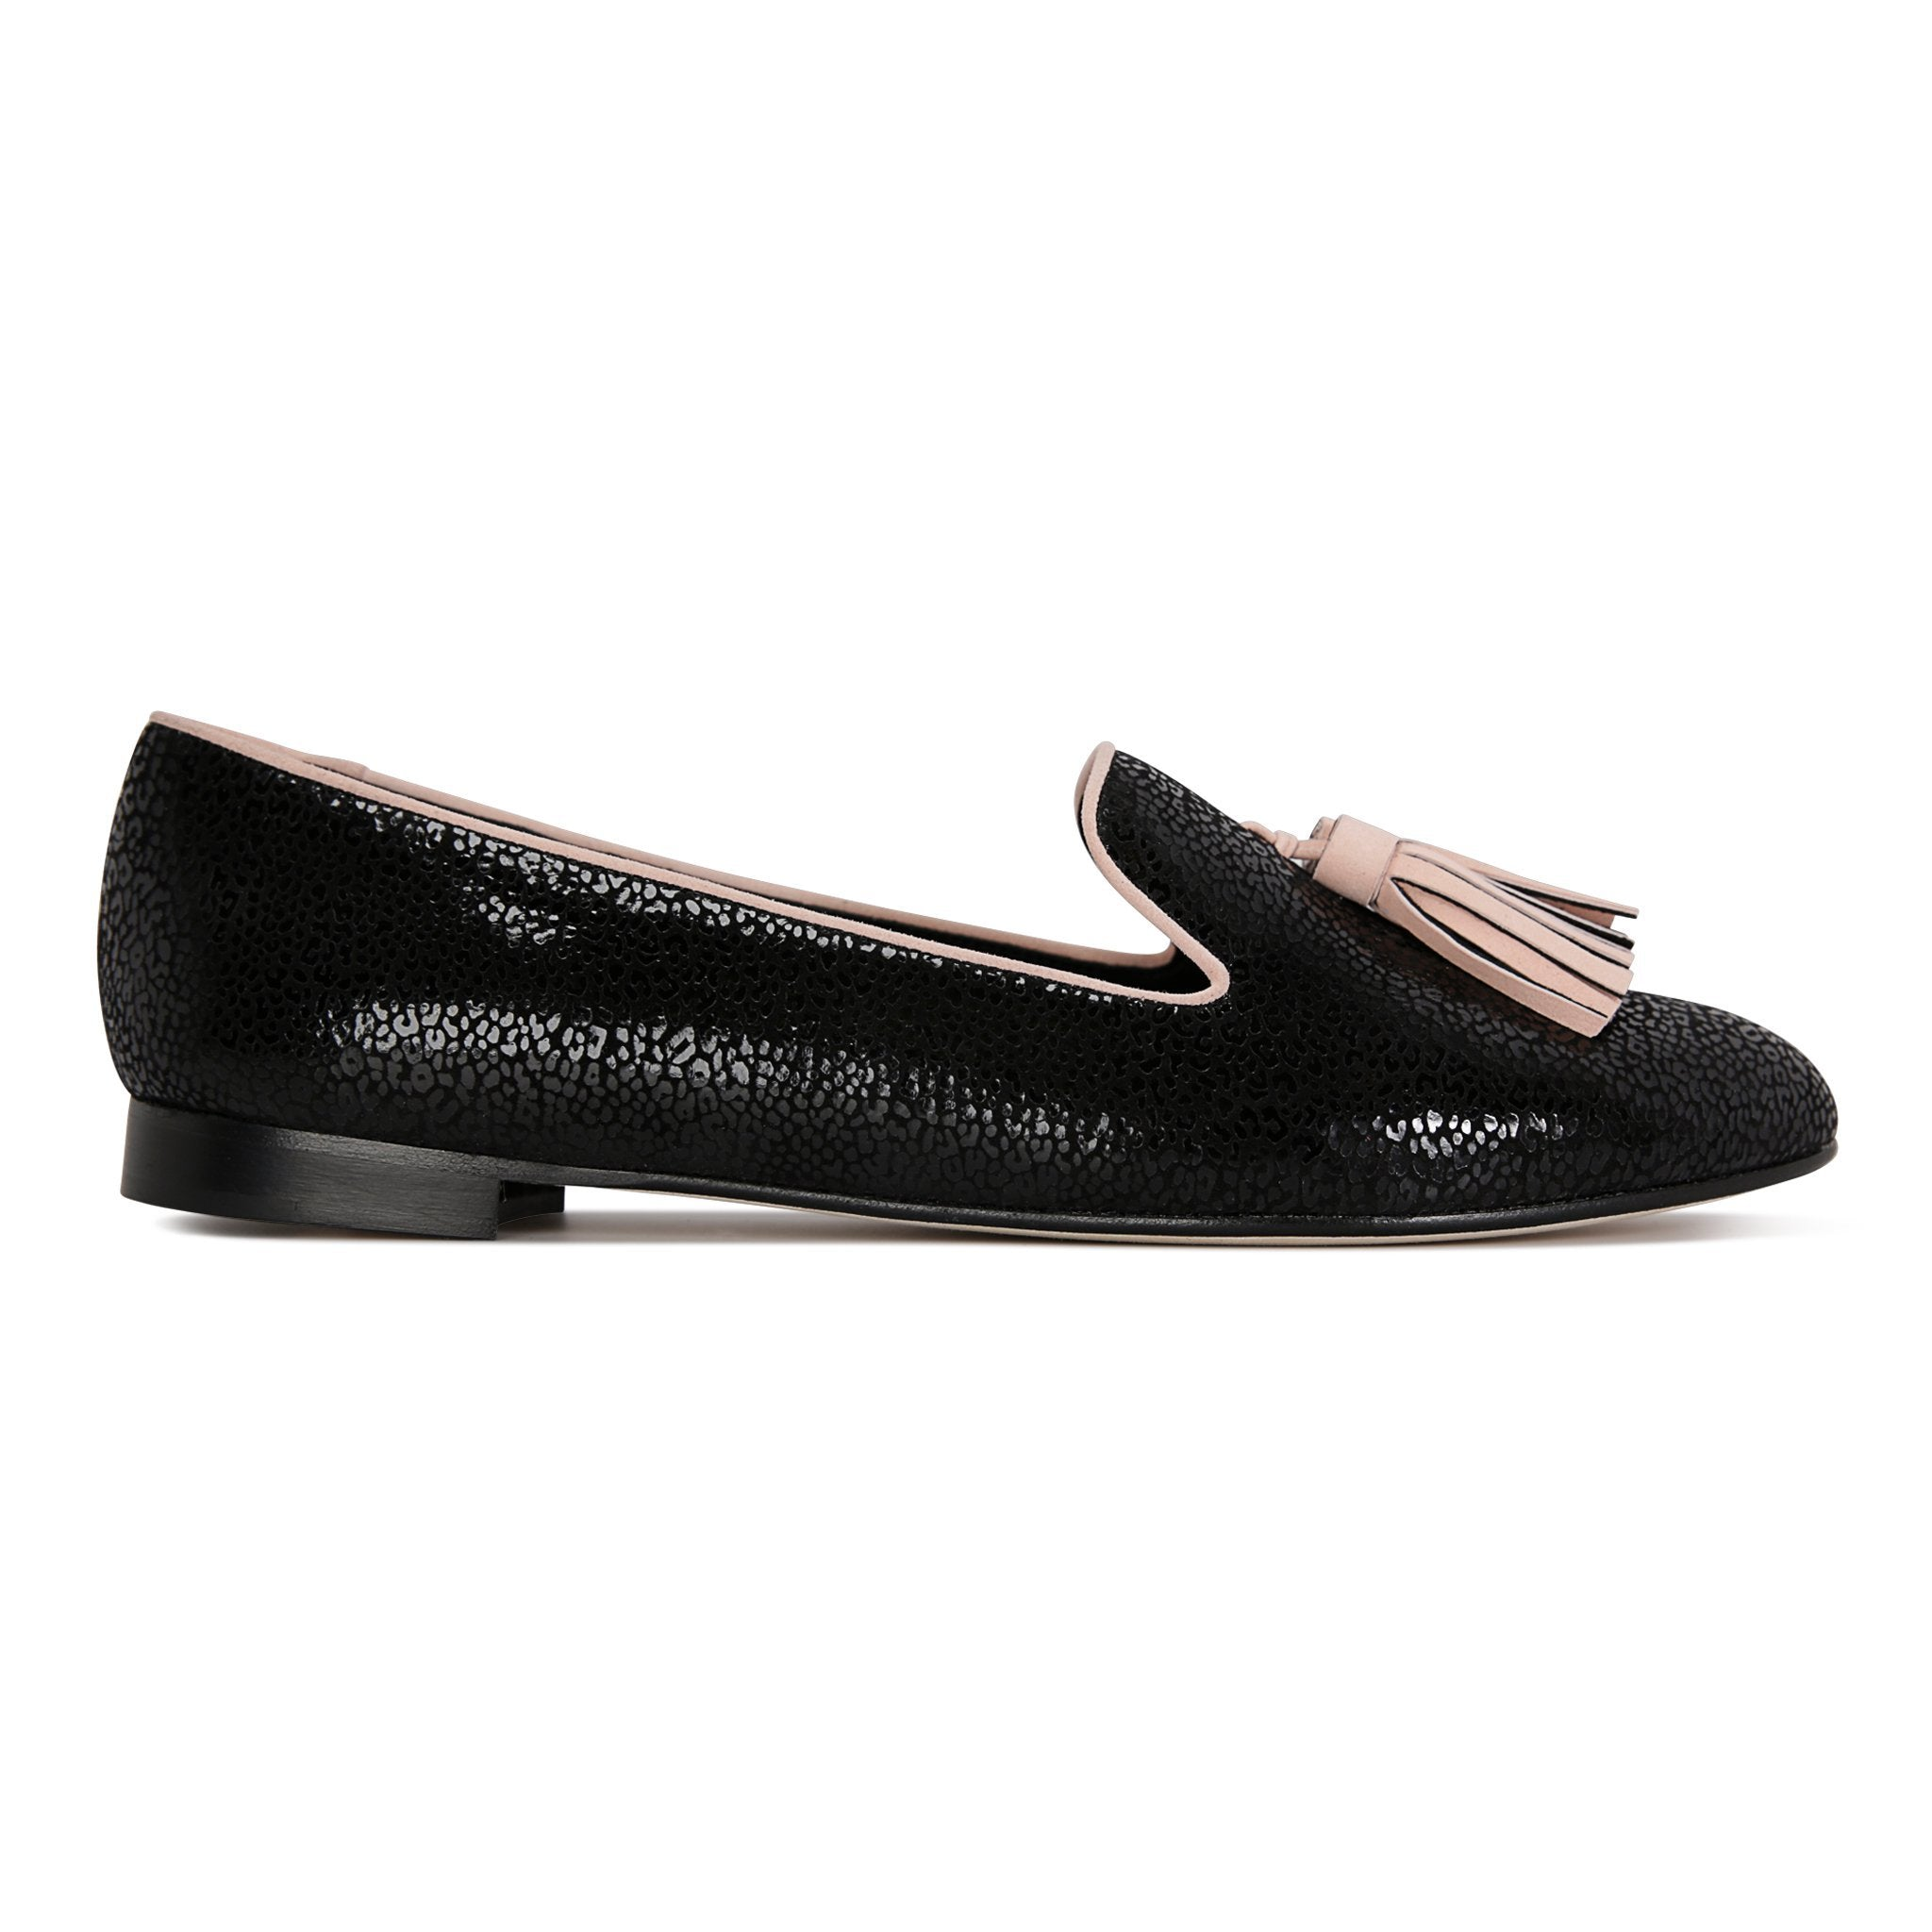 PARMA - Savannah Nero + Velukid Blush Pink, VIAJIYU - Women's Hand Made Sustainable Luxury Shoes. Made in Italy. Made to Order.